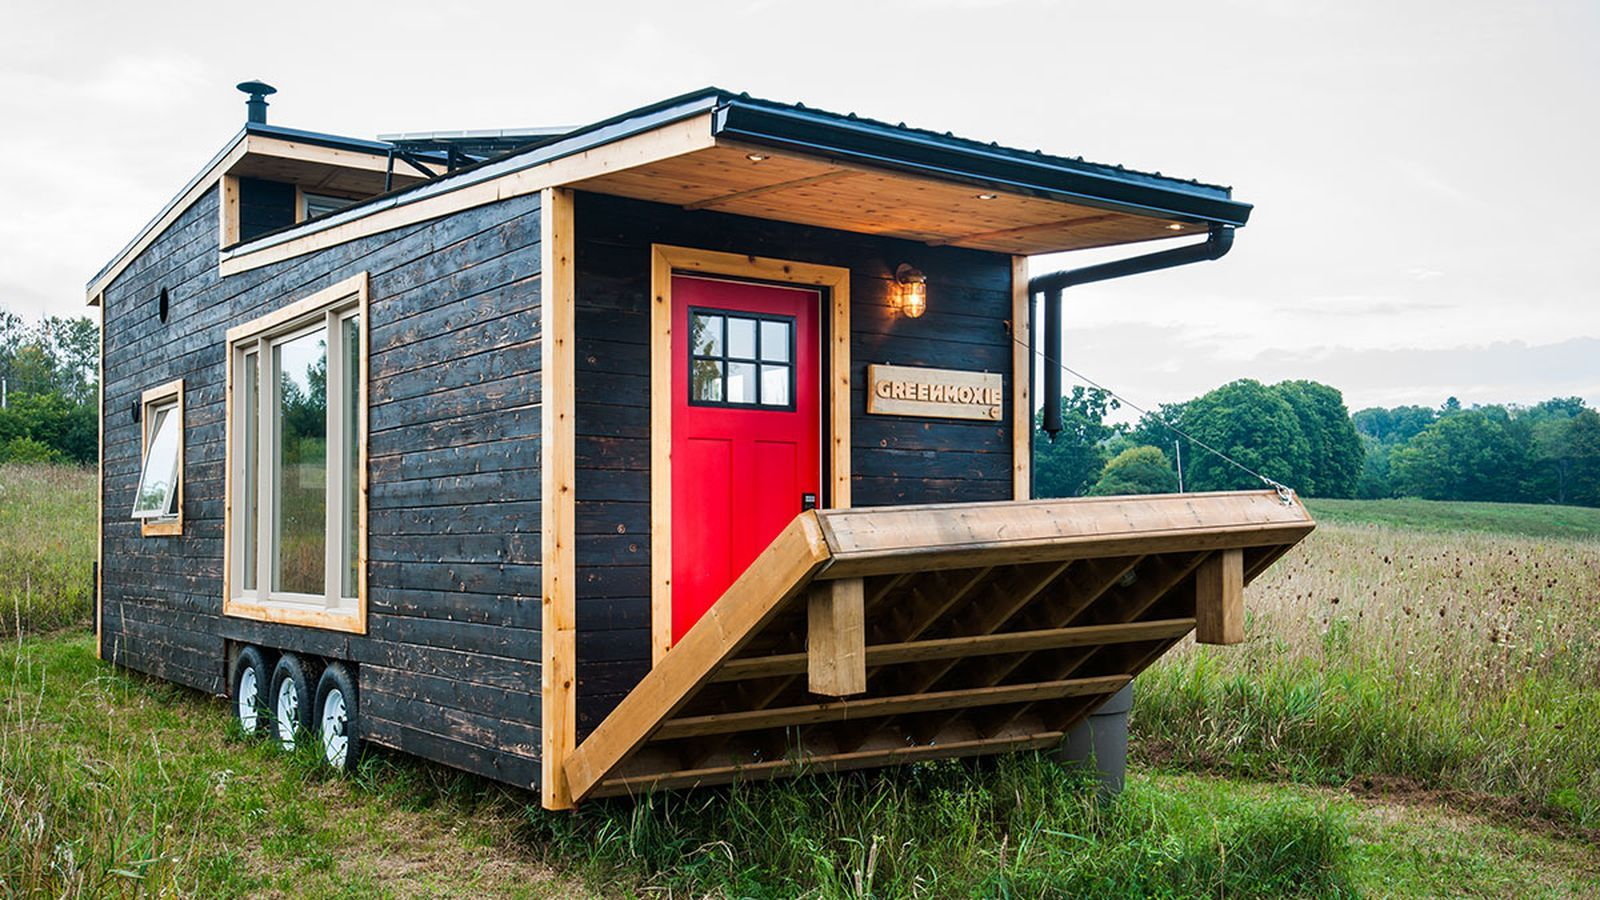 Eco Friendly Tiny House Offers Reclaimed Style And Drawbridge Deck Off Grid Tiny House Tiny Mobile House Best Tiny House